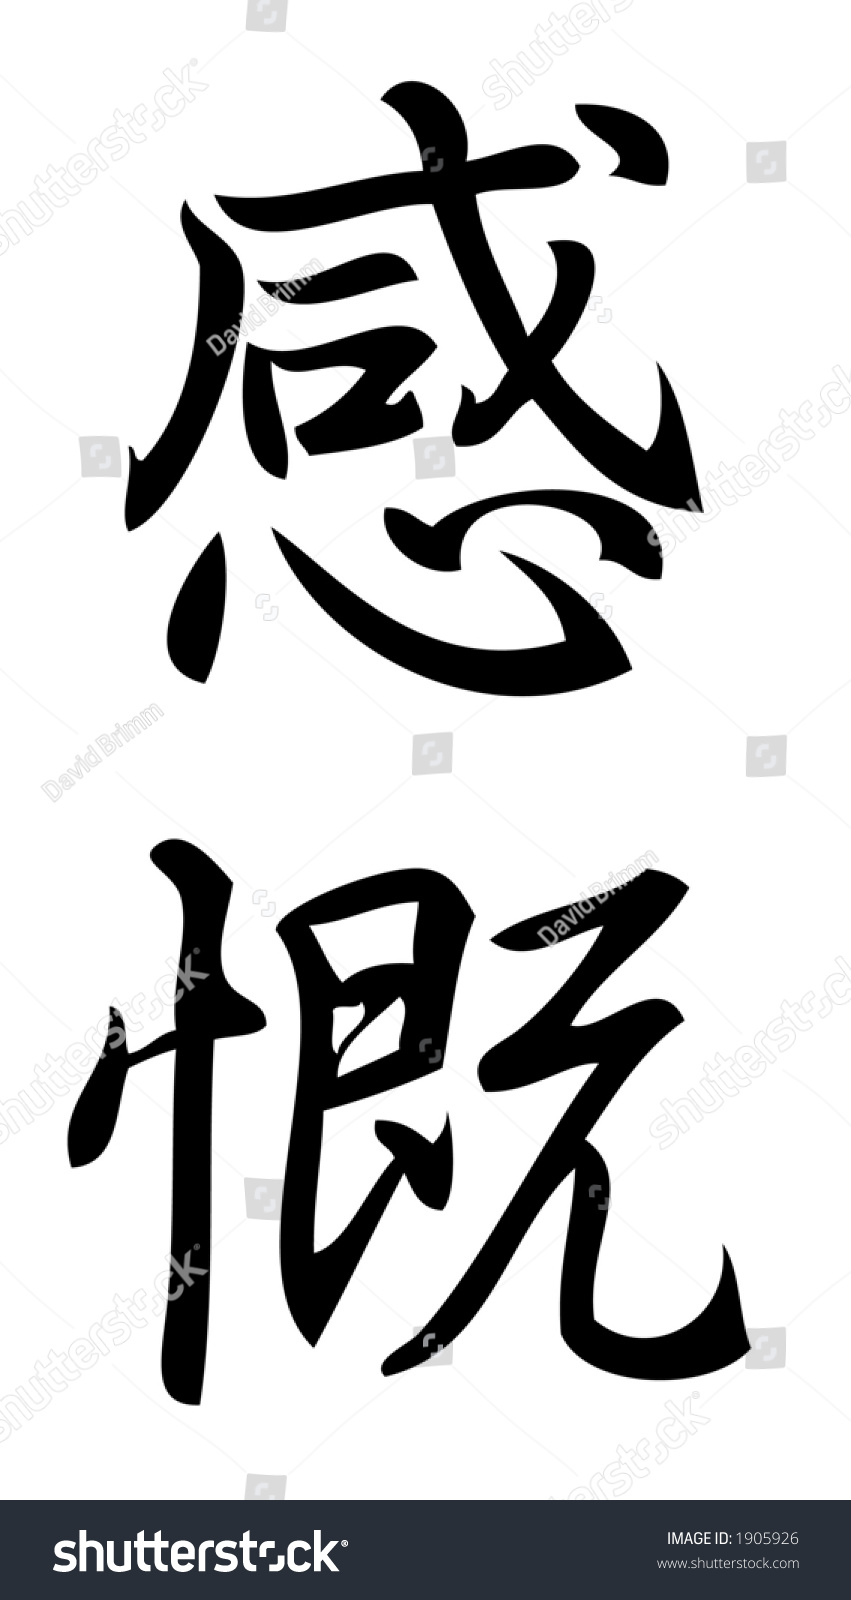 Kanji character deep emotions kanji one stock illustration 1905926 kanji character for deep emotions kanji one of the three scripts buycottarizona Image collections